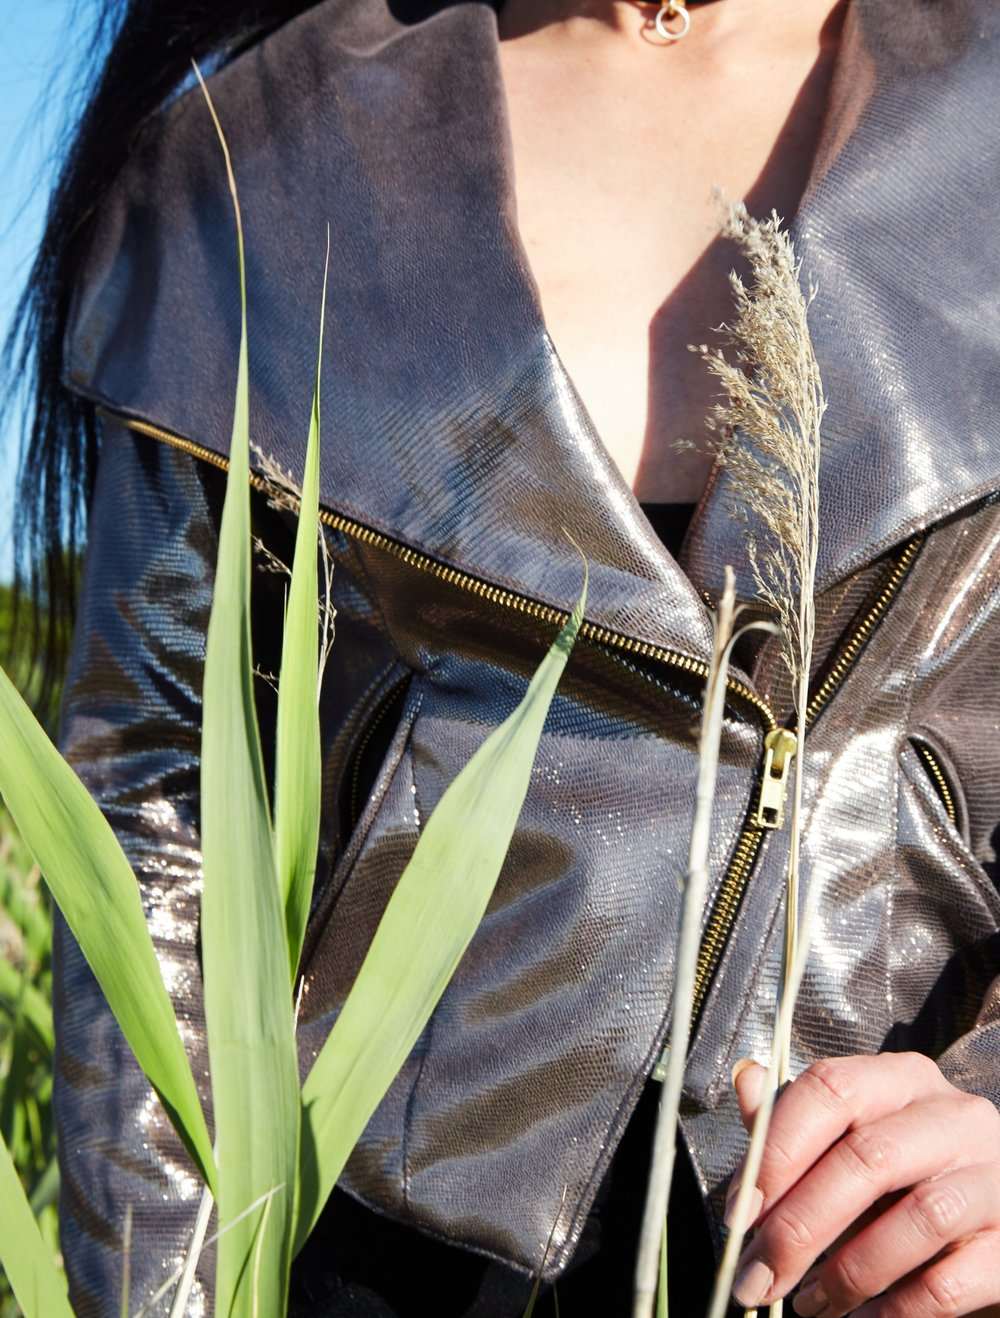 This custom designed Metallic Jacket was made of soft vegan leather with prodigious lapels and metal zippers that symbols rock solid strength, while the hand-sewn French lace detail  on the lower back emphasizing femininity.